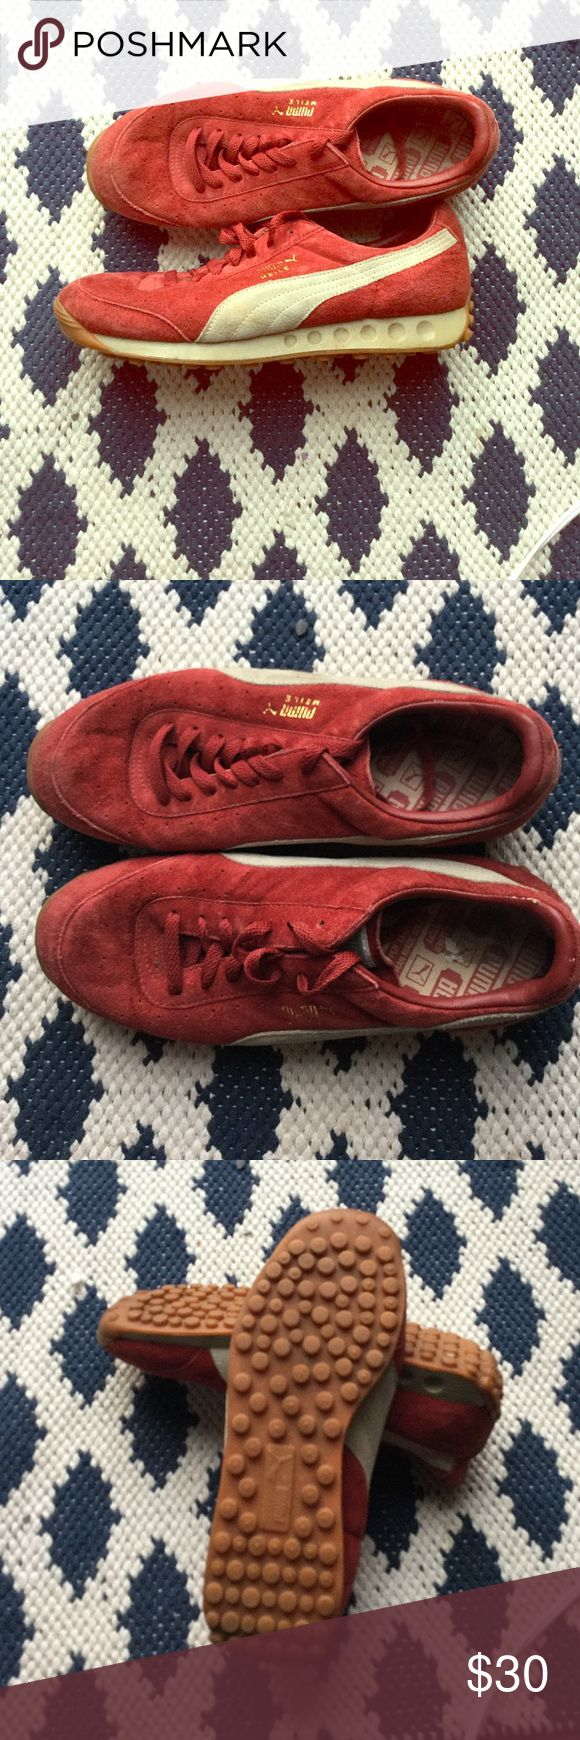 Red Men's Pumas Gently used, great condition red men's puma sneakers. Size 10.5 Puma Shoes Sneakers